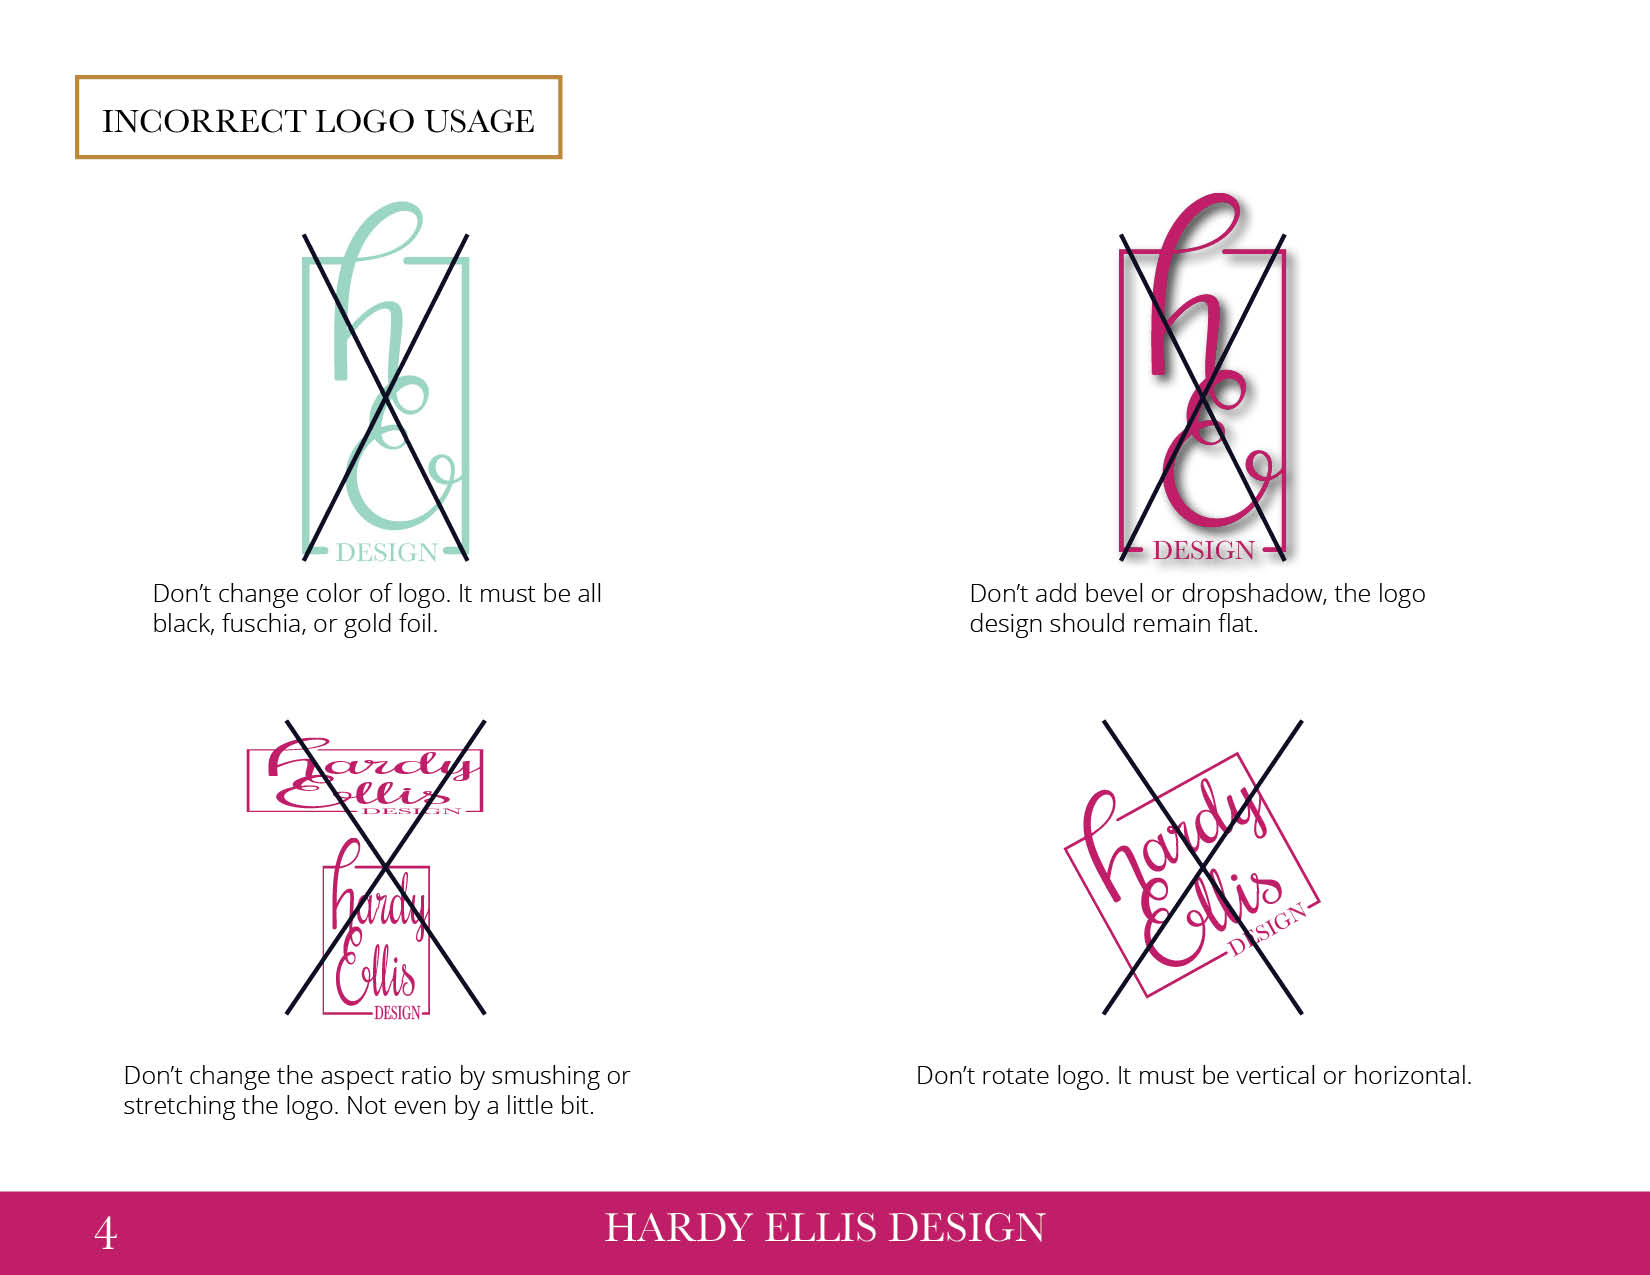 Hardy Ellis Design Style Guide4